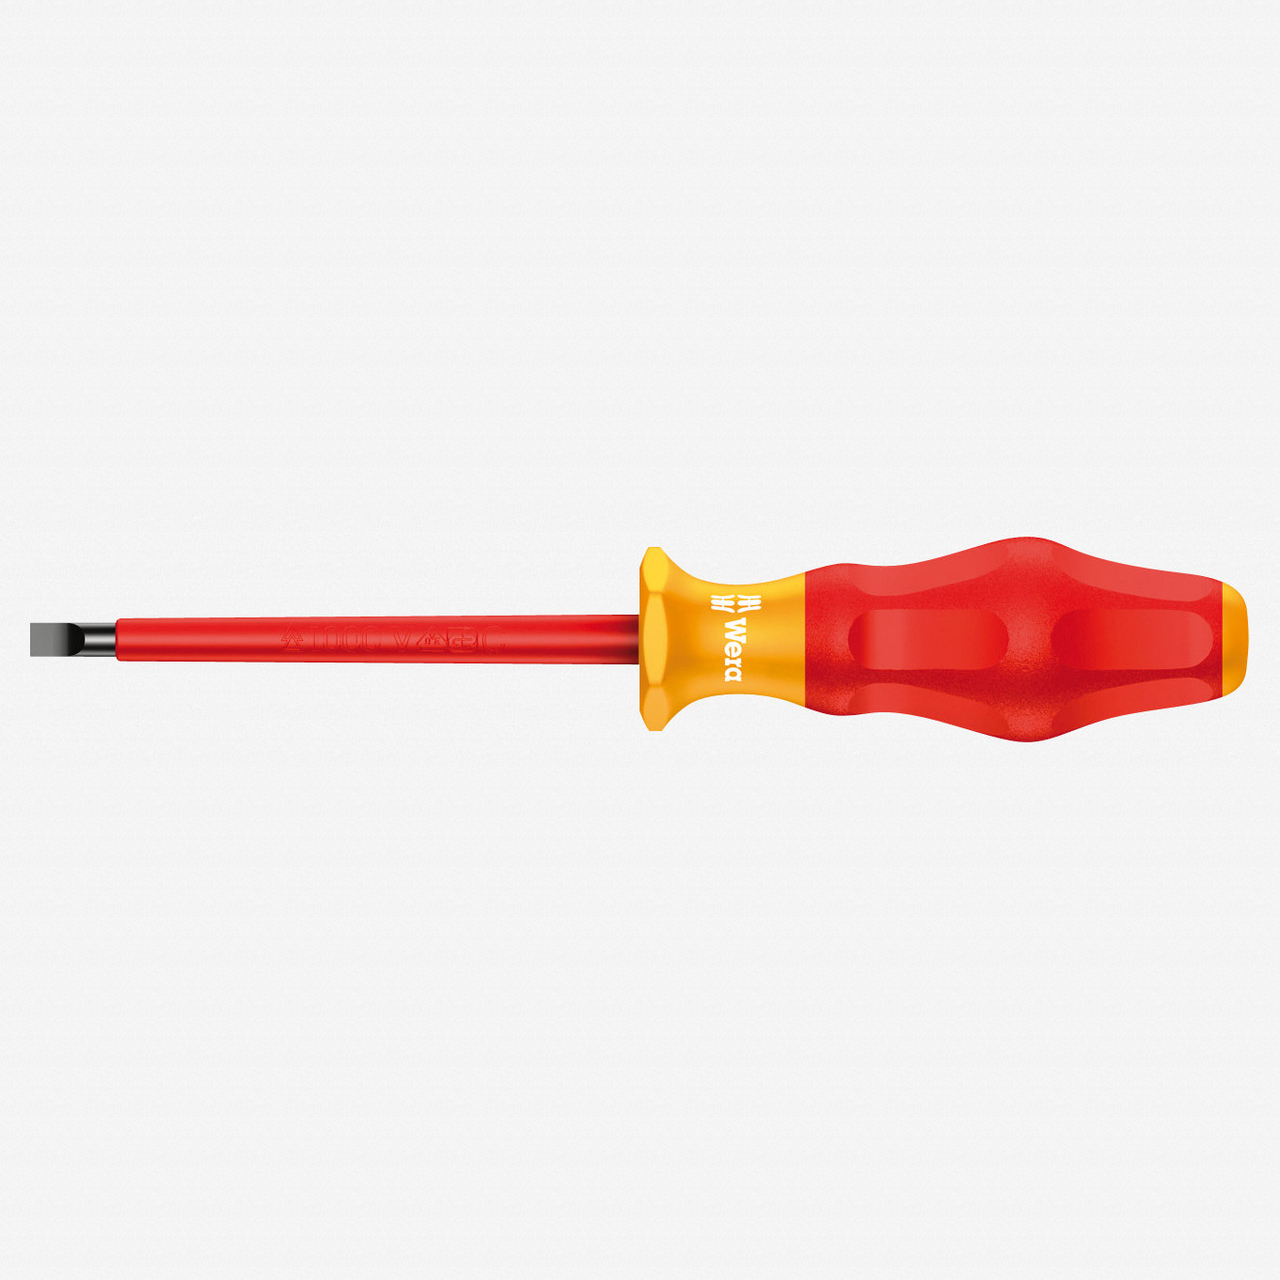 Wera 031582 3.5 x 100mm VDE Insulated Slotted Screwdriver - KC Tool